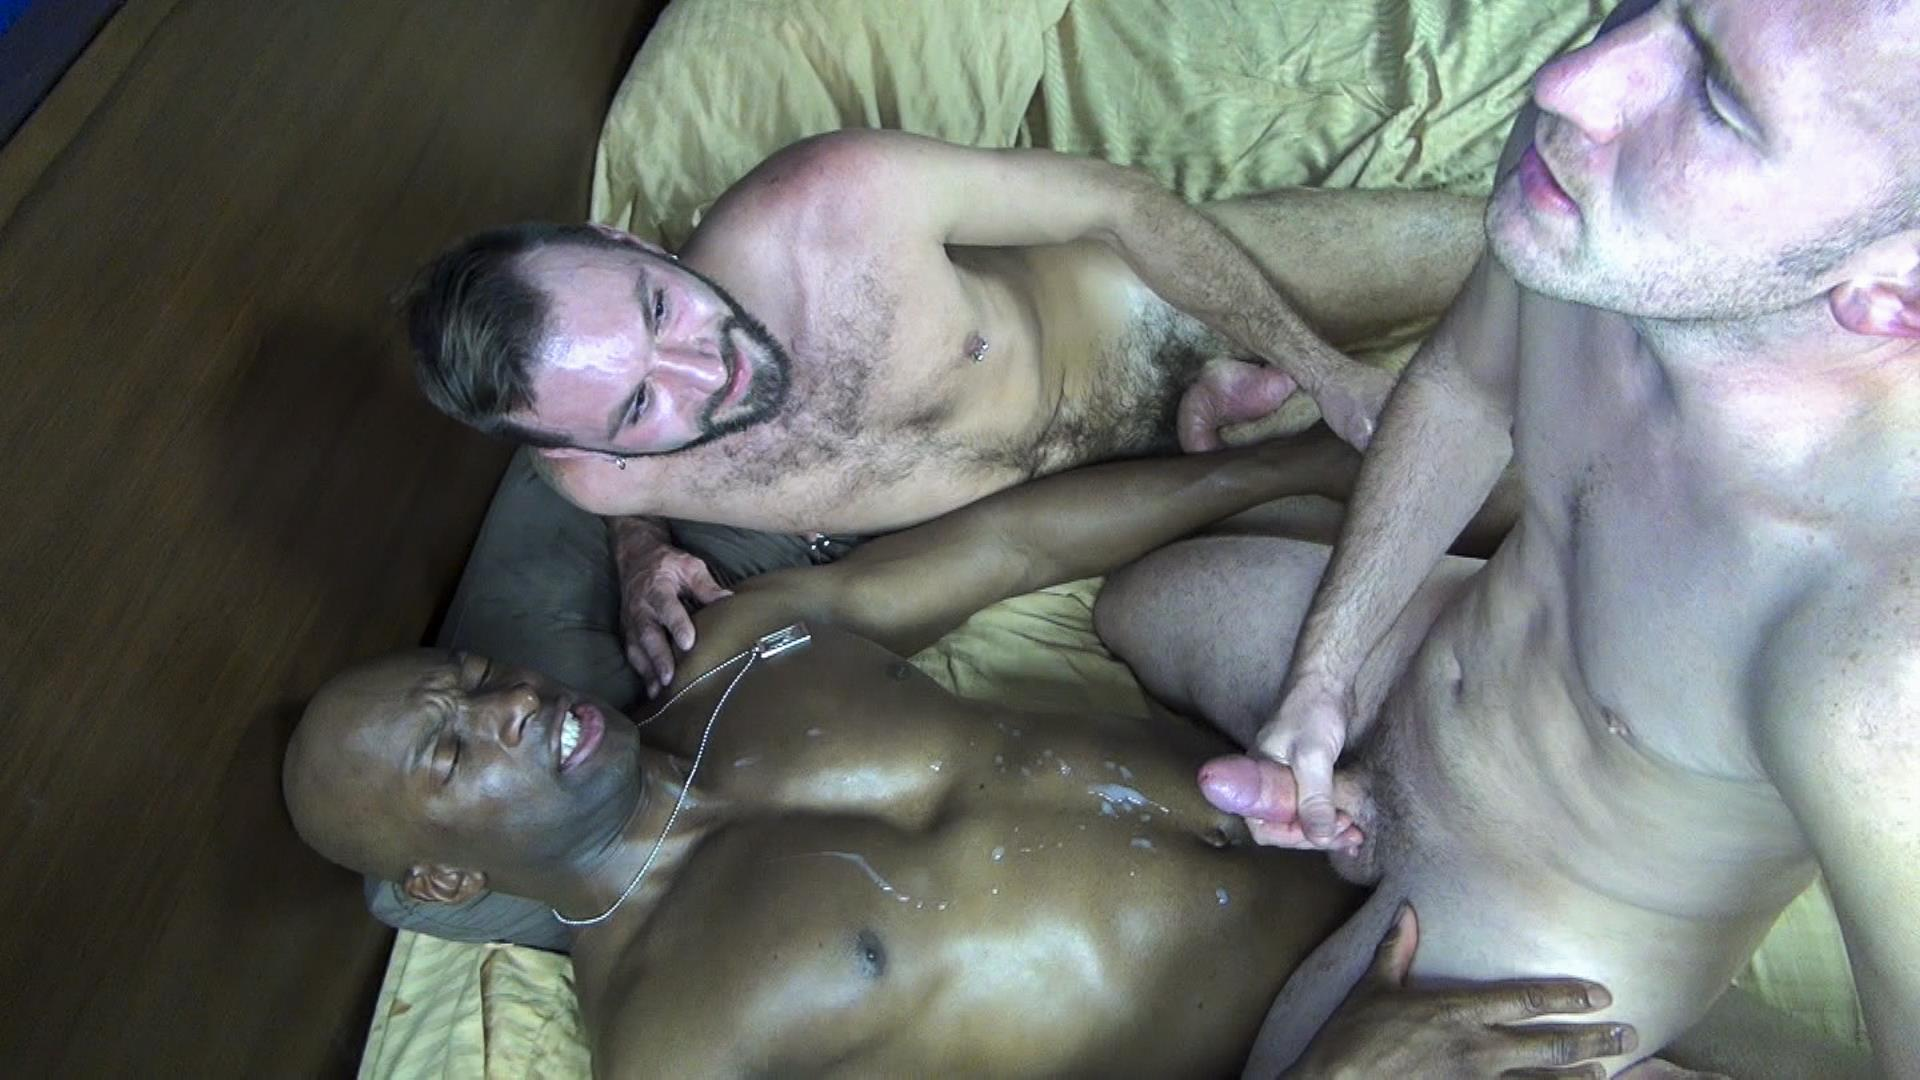 Raw-Fuck-Club-Ethan-Palmer-and-Champ-Robinson-and-Trit-Tyler-Bareback-Interrical-Amateur-Gay-Porn-06 Champ Robinson Shares His Big Black Dick With 2 White Guys